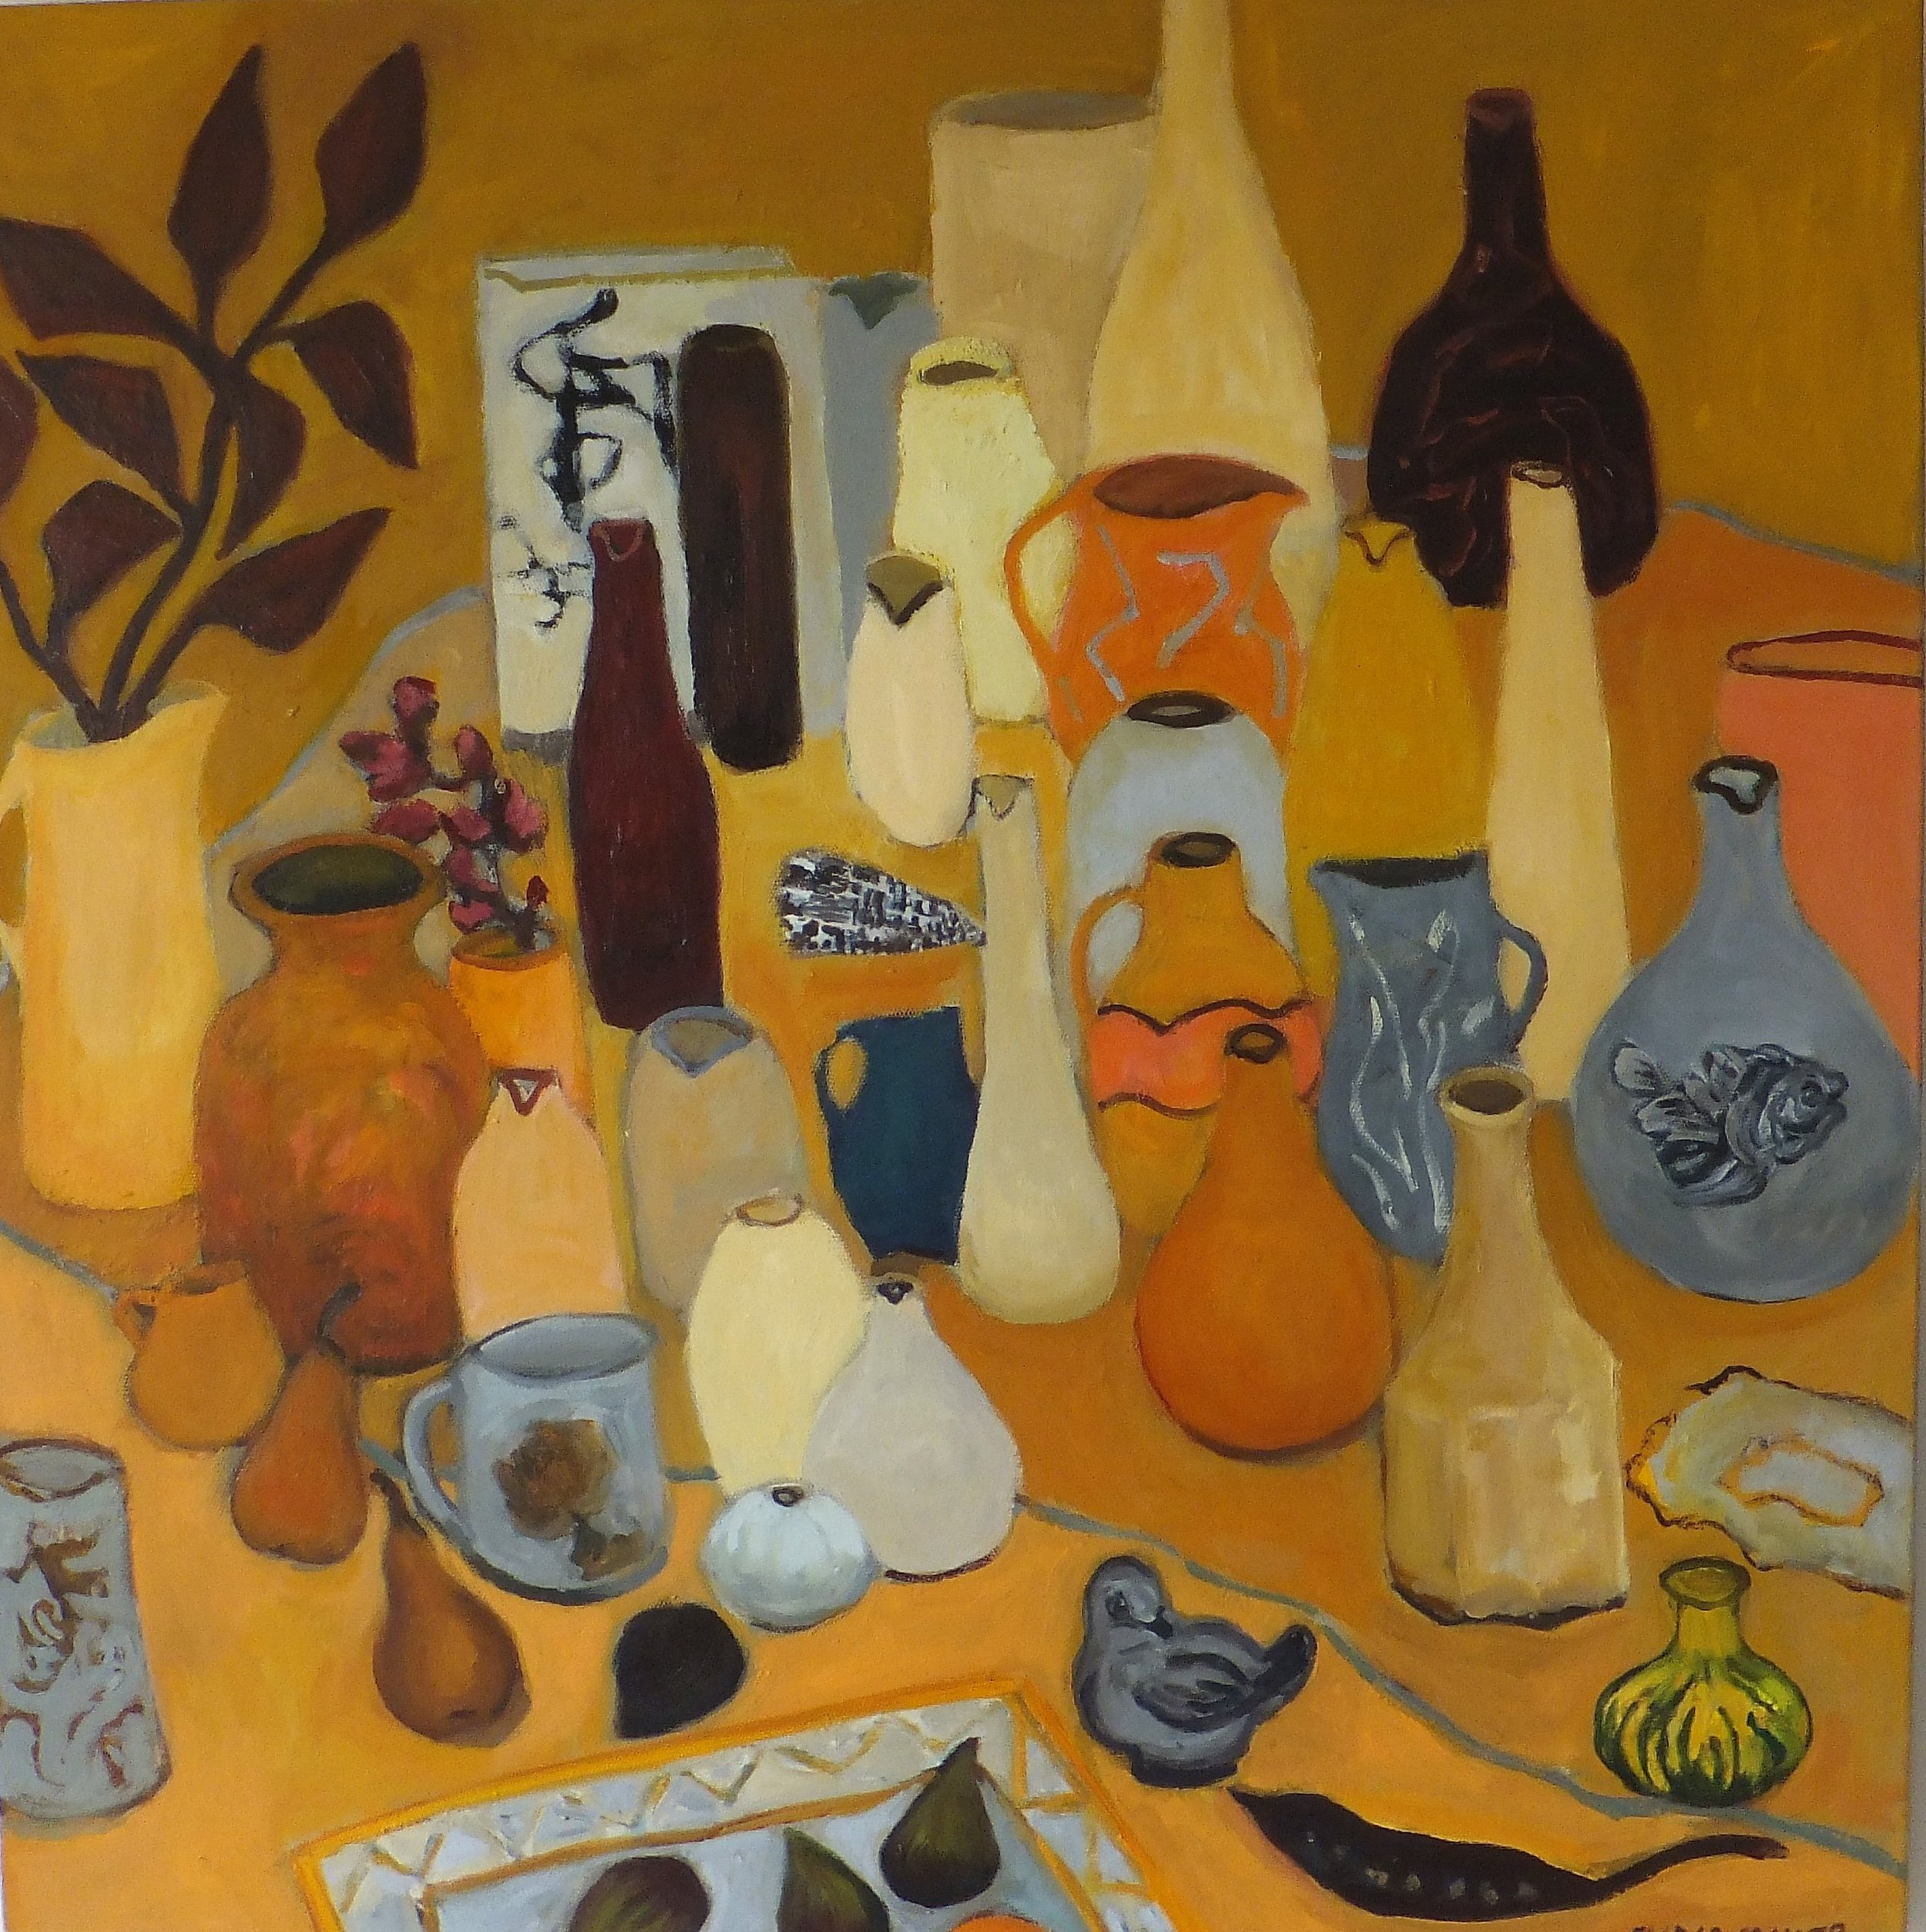 Lydia Miller, Still-Life with bird, 2018 oil on canvas, 76 x 76cm $920.00 AVAILABLE contact info@gallery139.com.au